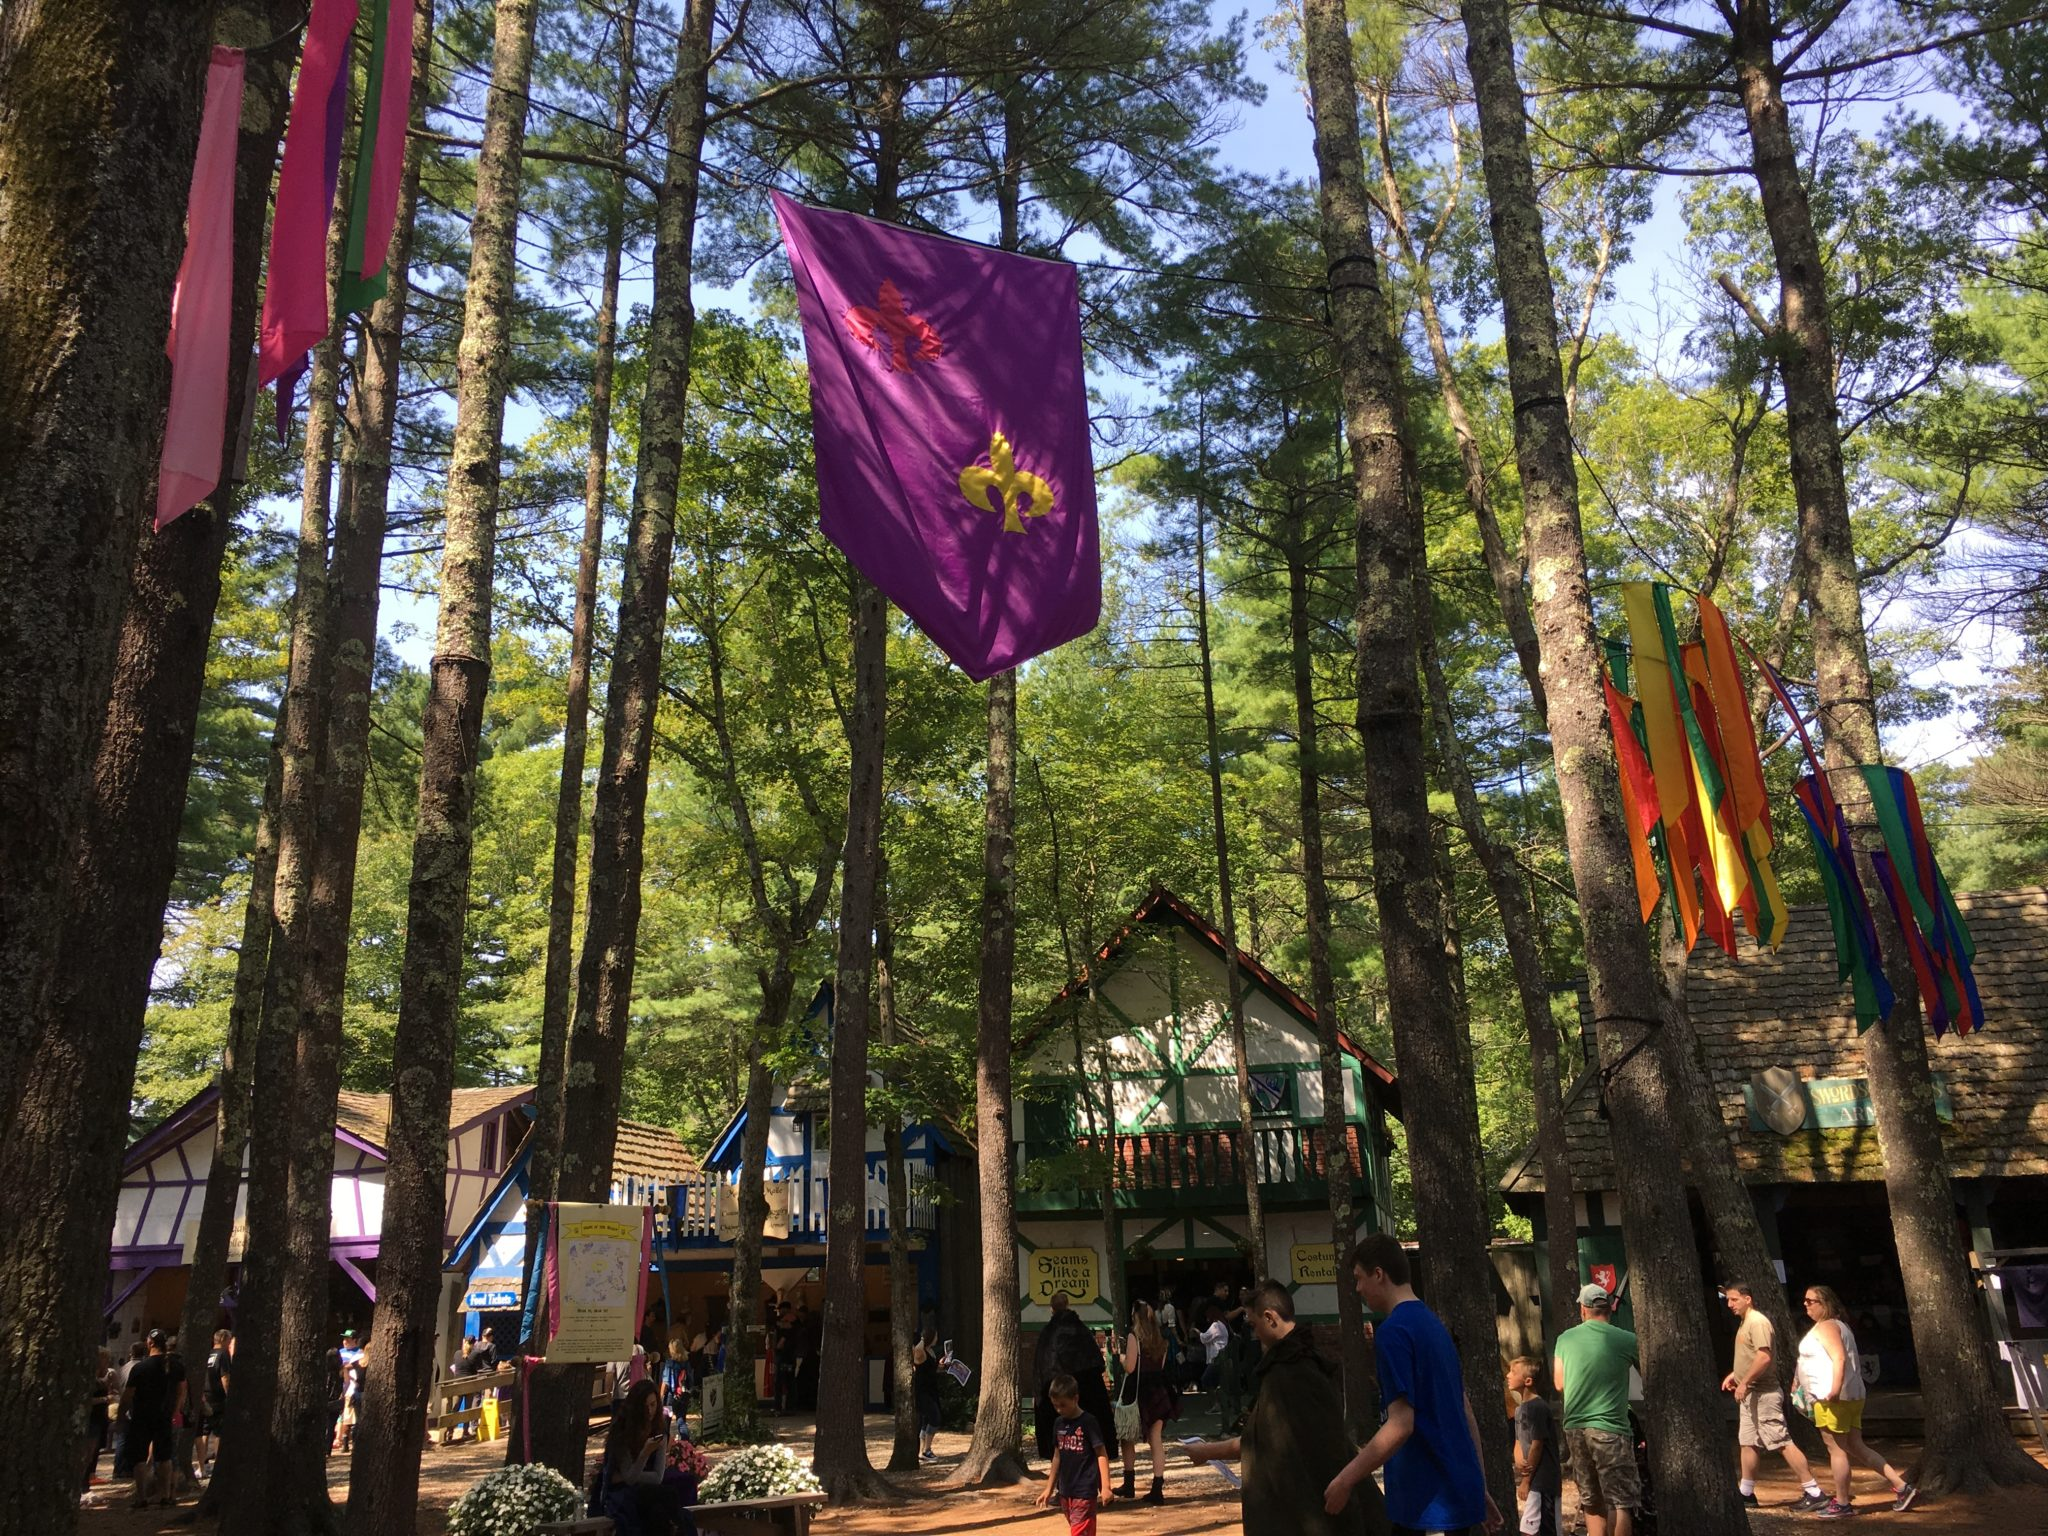 There is so much fun to be had at King Richard's Faire in southeastern Massachusetts!